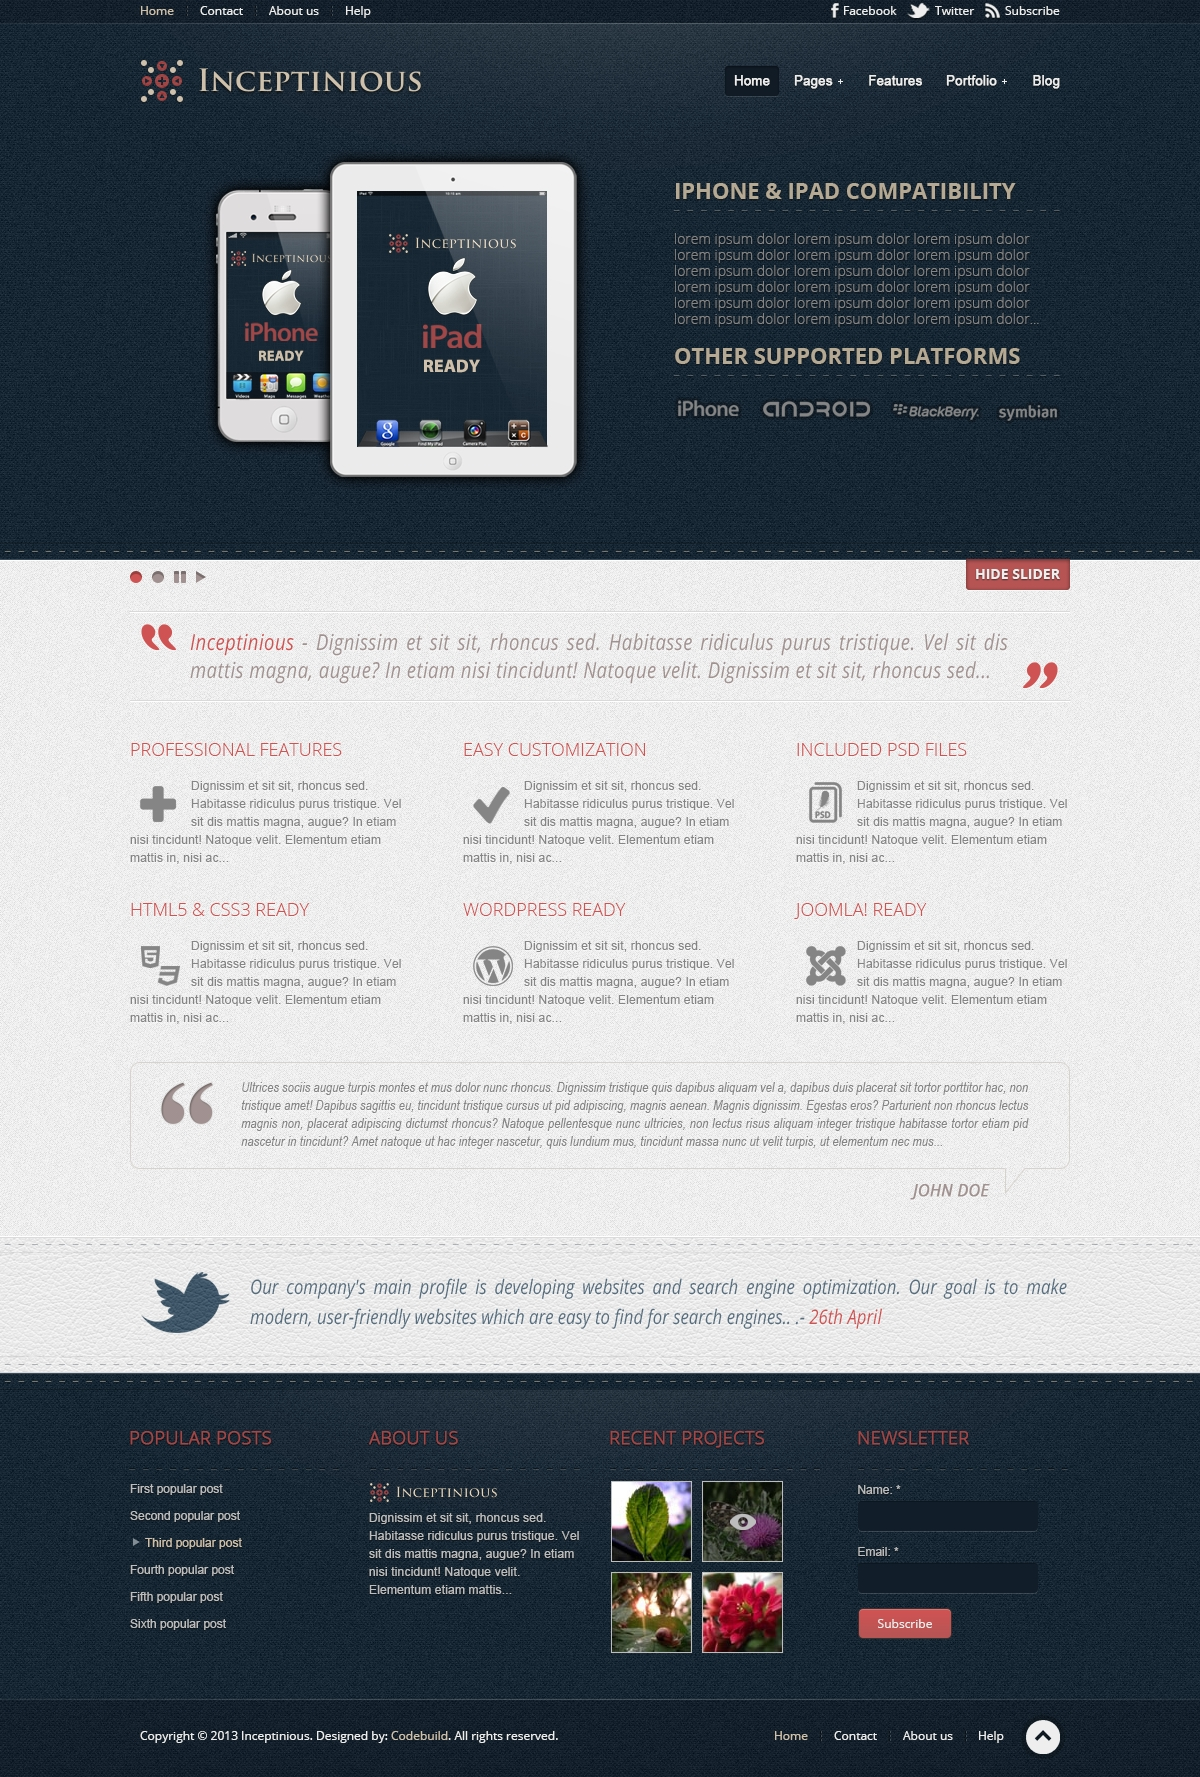 inceptinious business website template freebies fribly. Black Bedroom Furniture Sets. Home Design Ideas